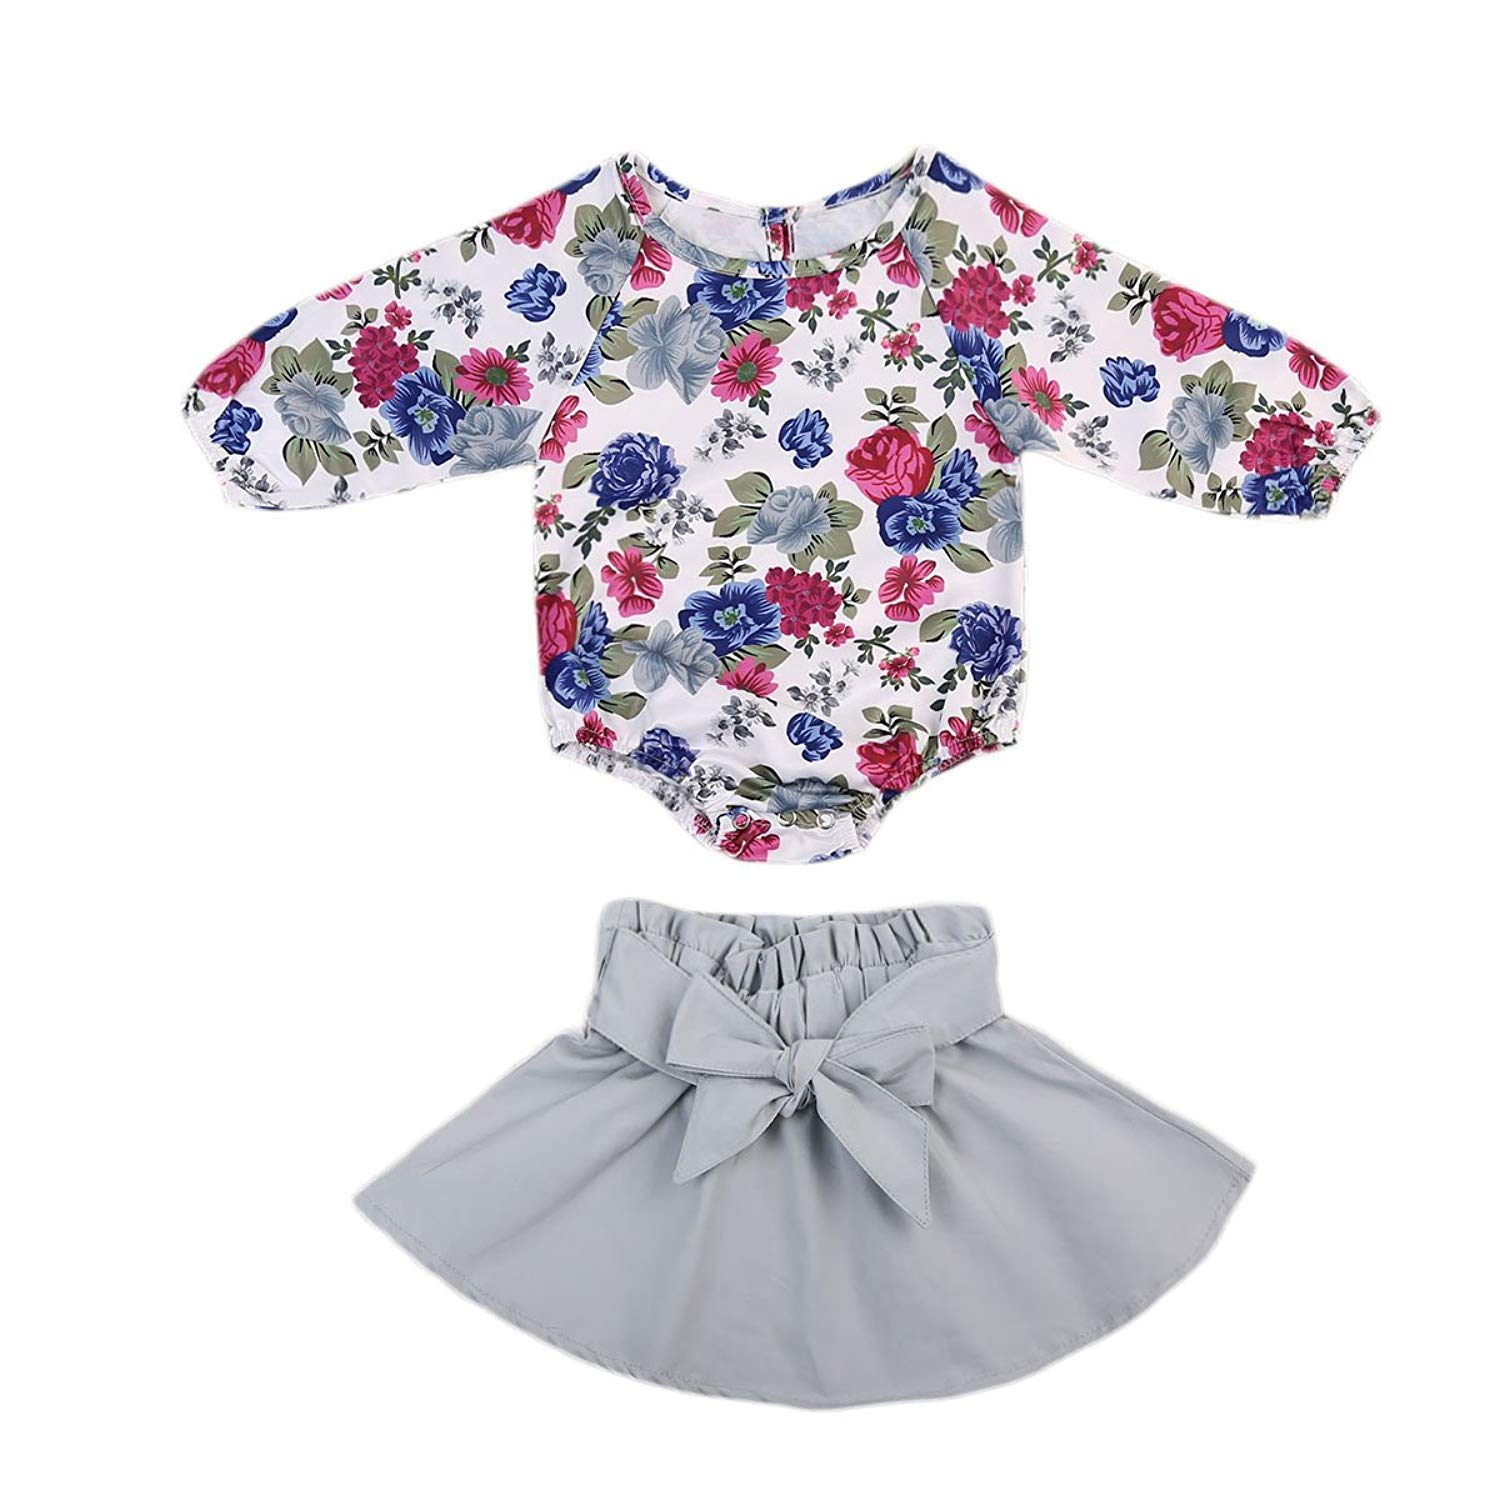 52652e6bf9c3 Amazon.com  Infant Baby Girls Skirt Outfit Set Floral Romper ...